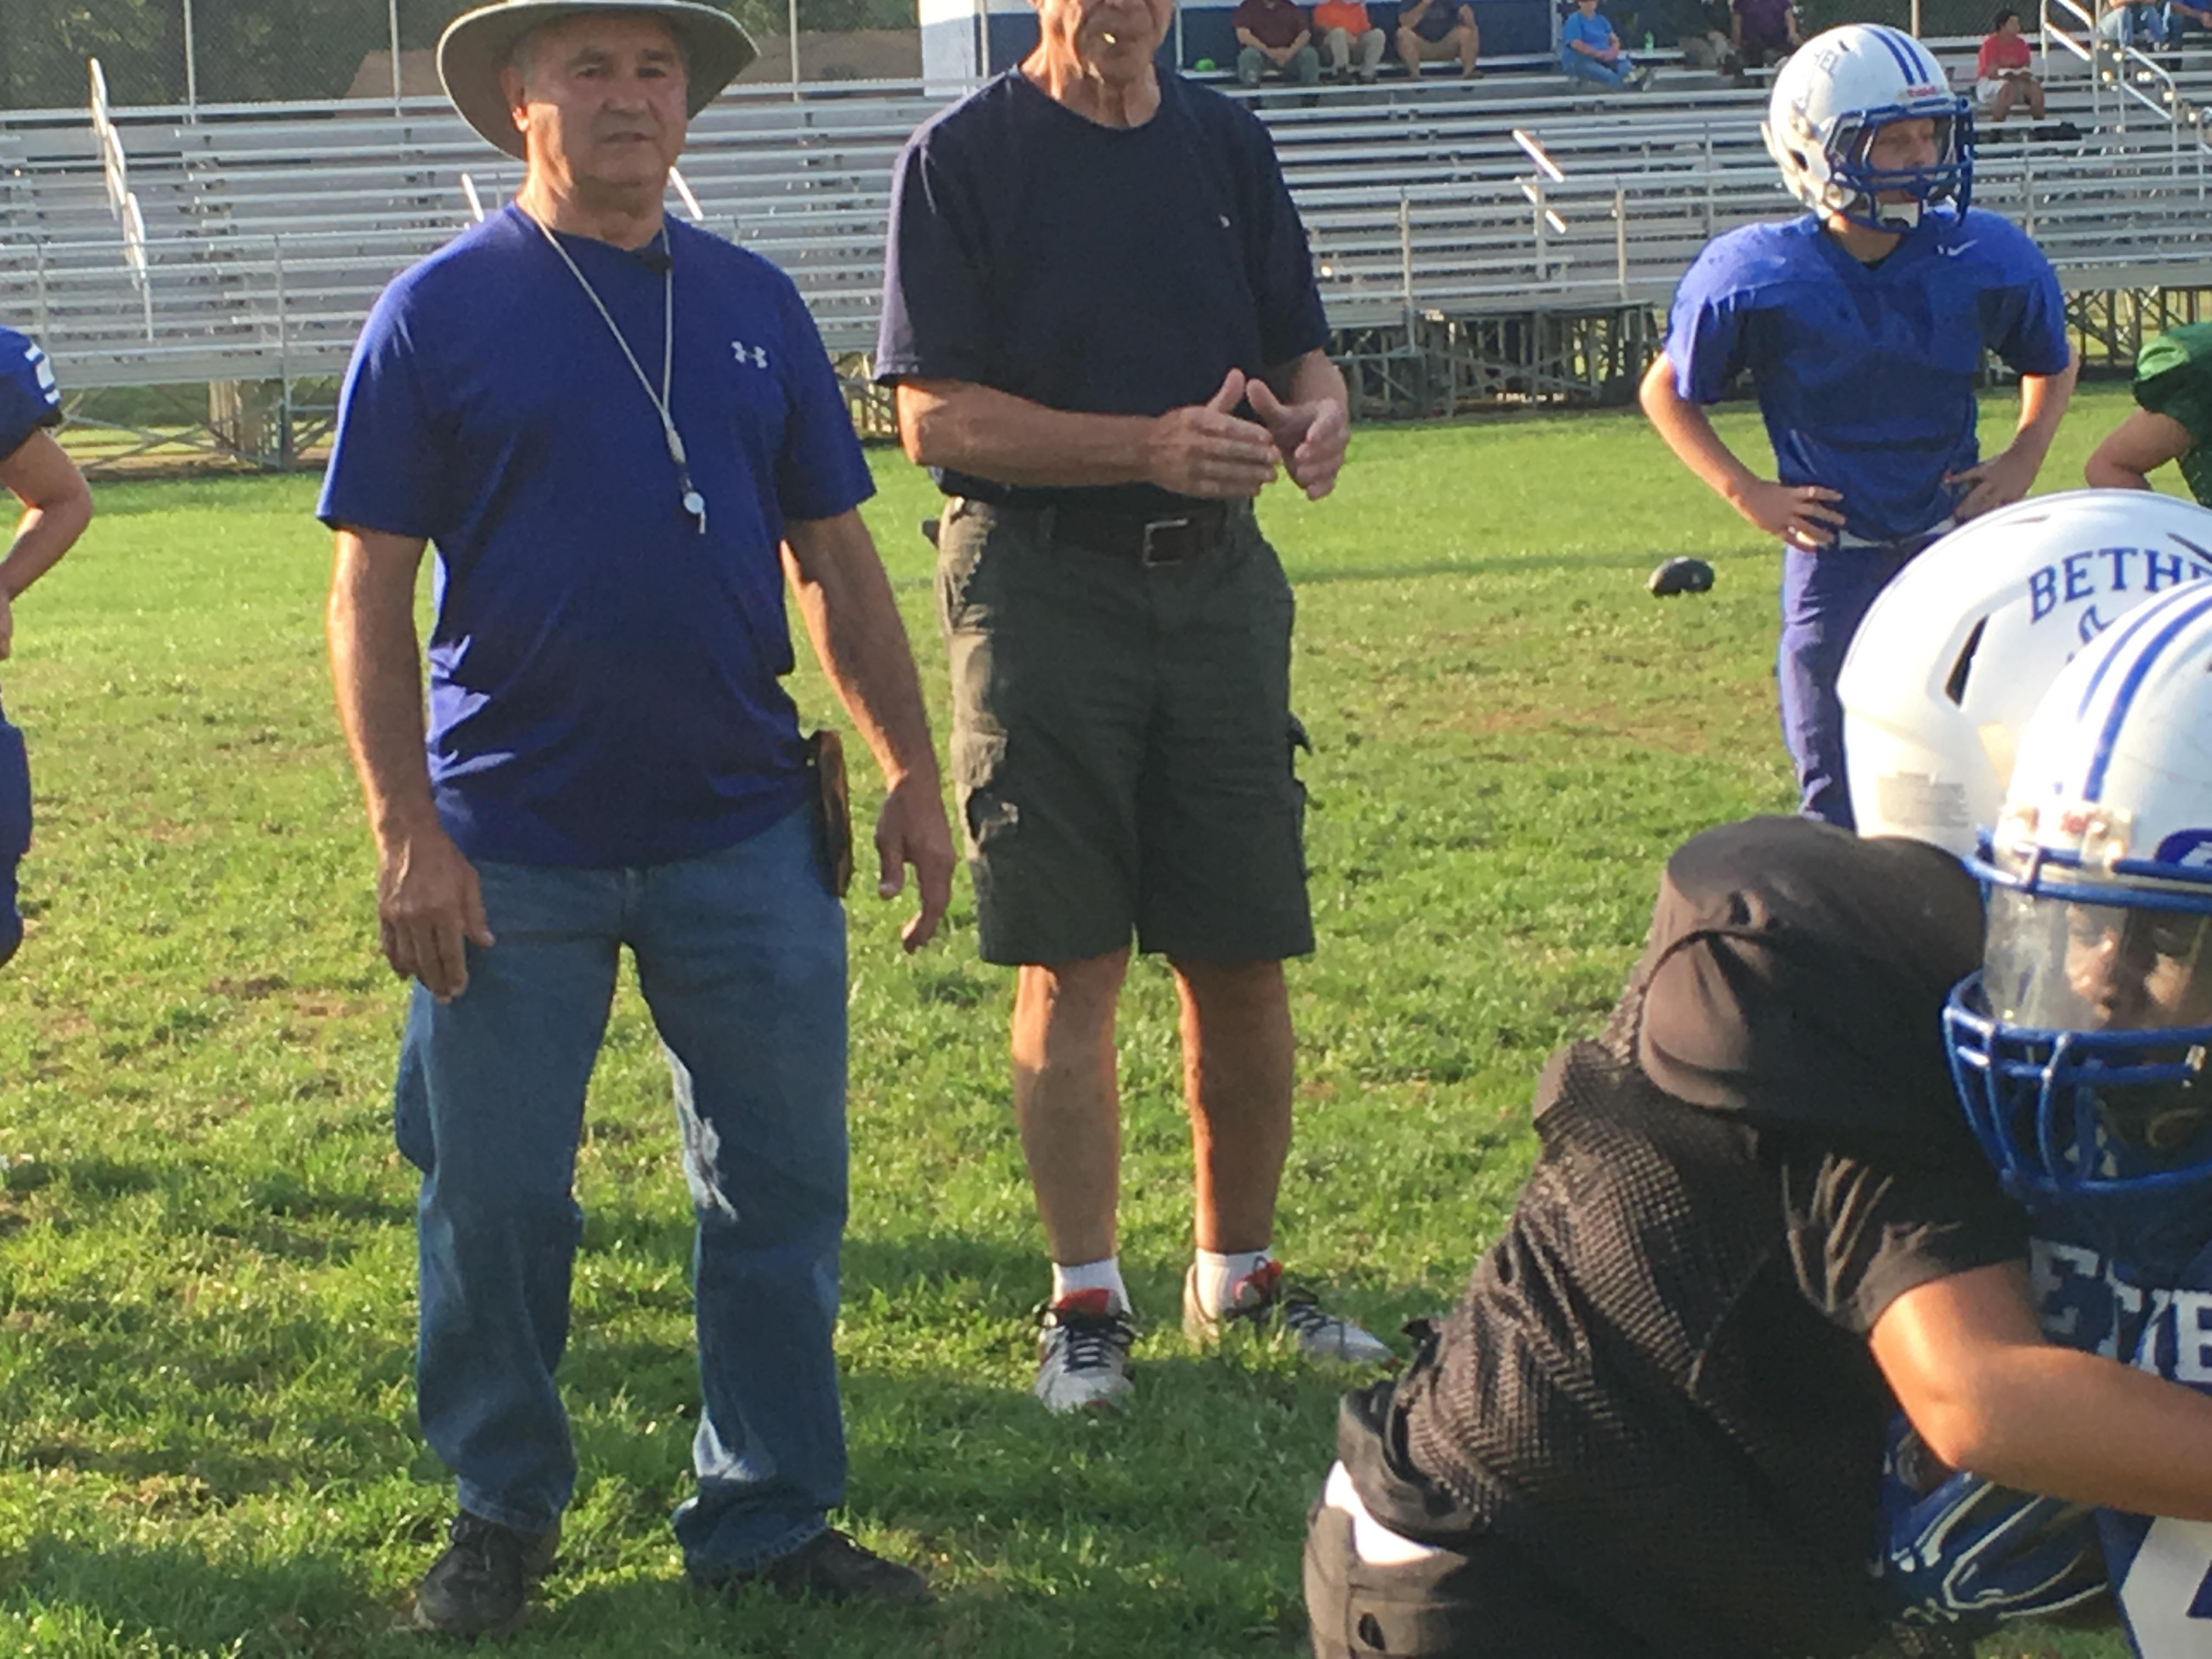 Our Person of the Week has been a pillar of youth football in the mountains for decades. For 49 years, coach Vick Inman has preached work ethic and teamwork, leaving a lasting impression. (Photo credit: WLOS staff)